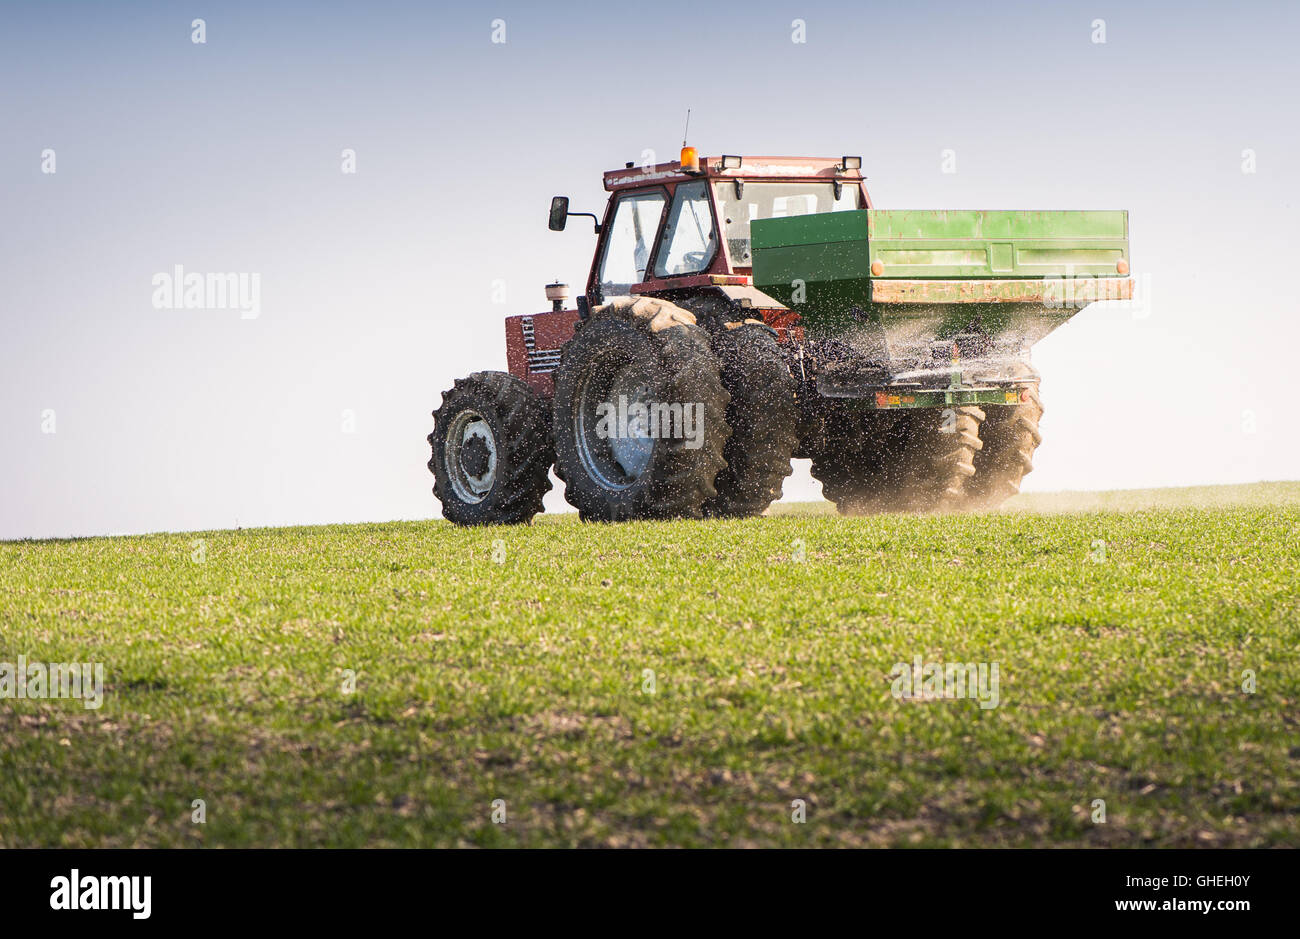 Tractor and fertilizer spreader in field - Stock Image